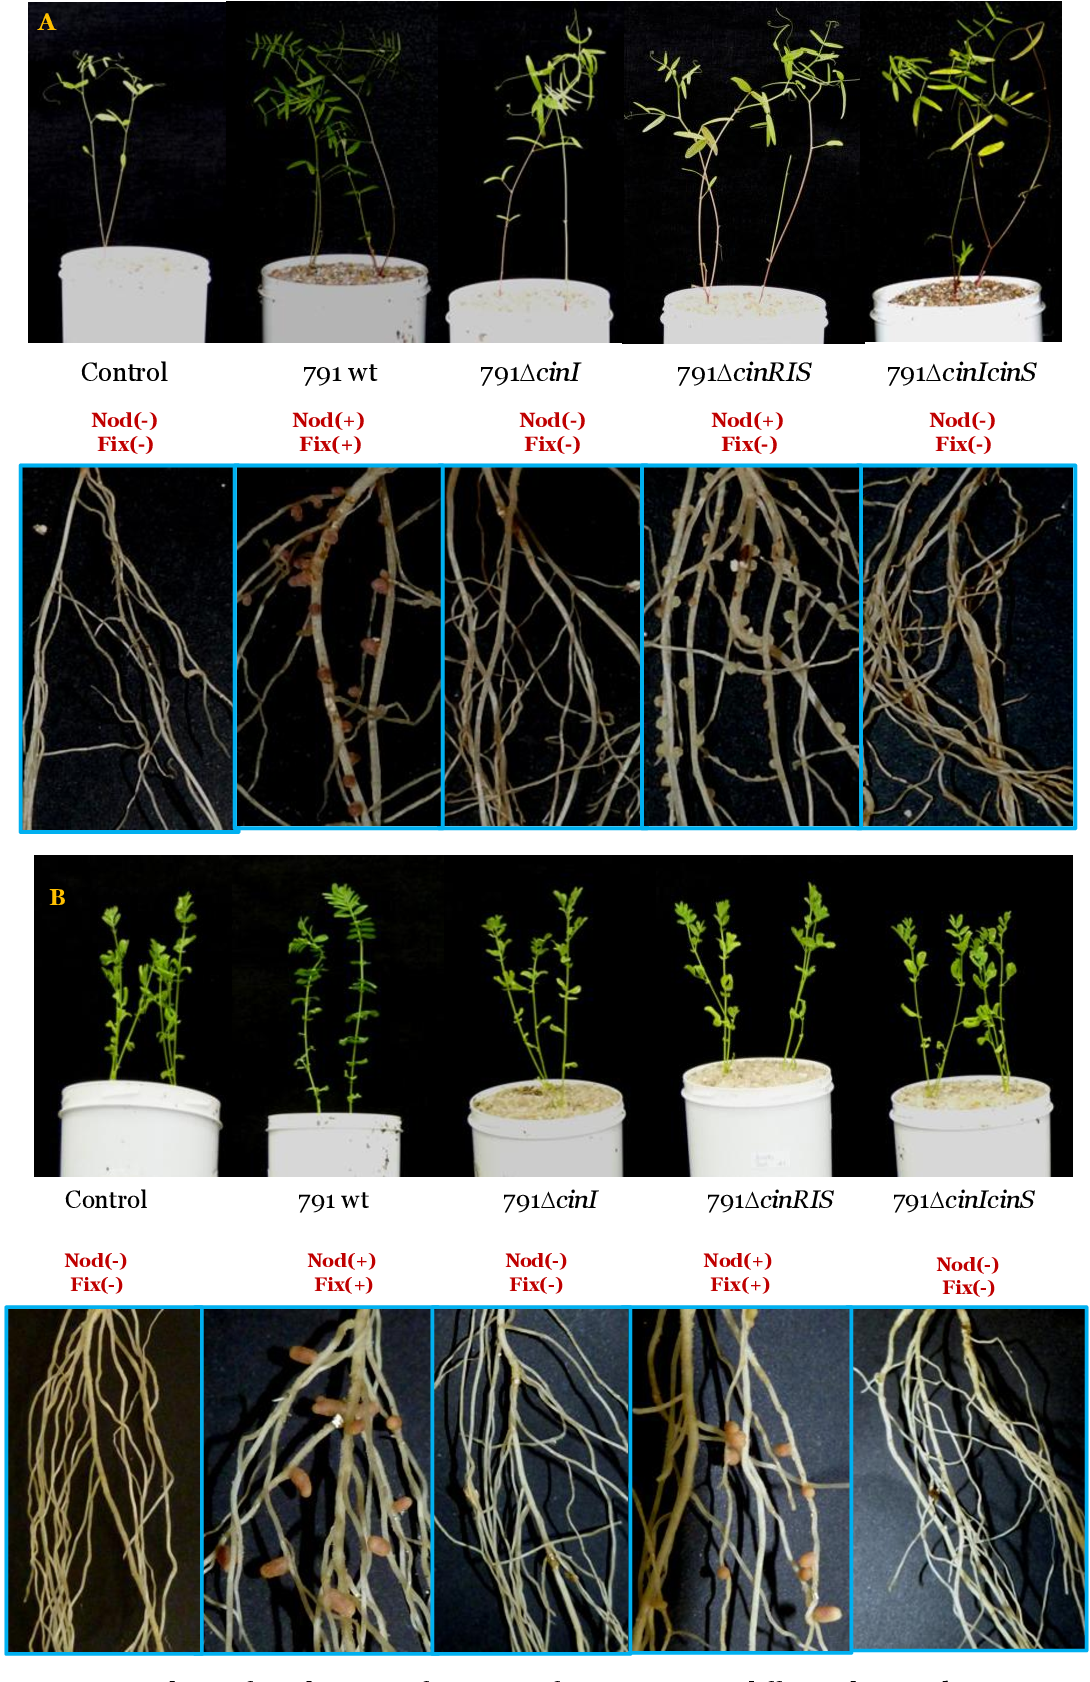 Figure 44. Analysis of symbiotic performance of cin mutants in different legume hosts. Upper pictures show shoot part of the plant, whereas the lower pictures show a detail of the roots for each of the strains tested.